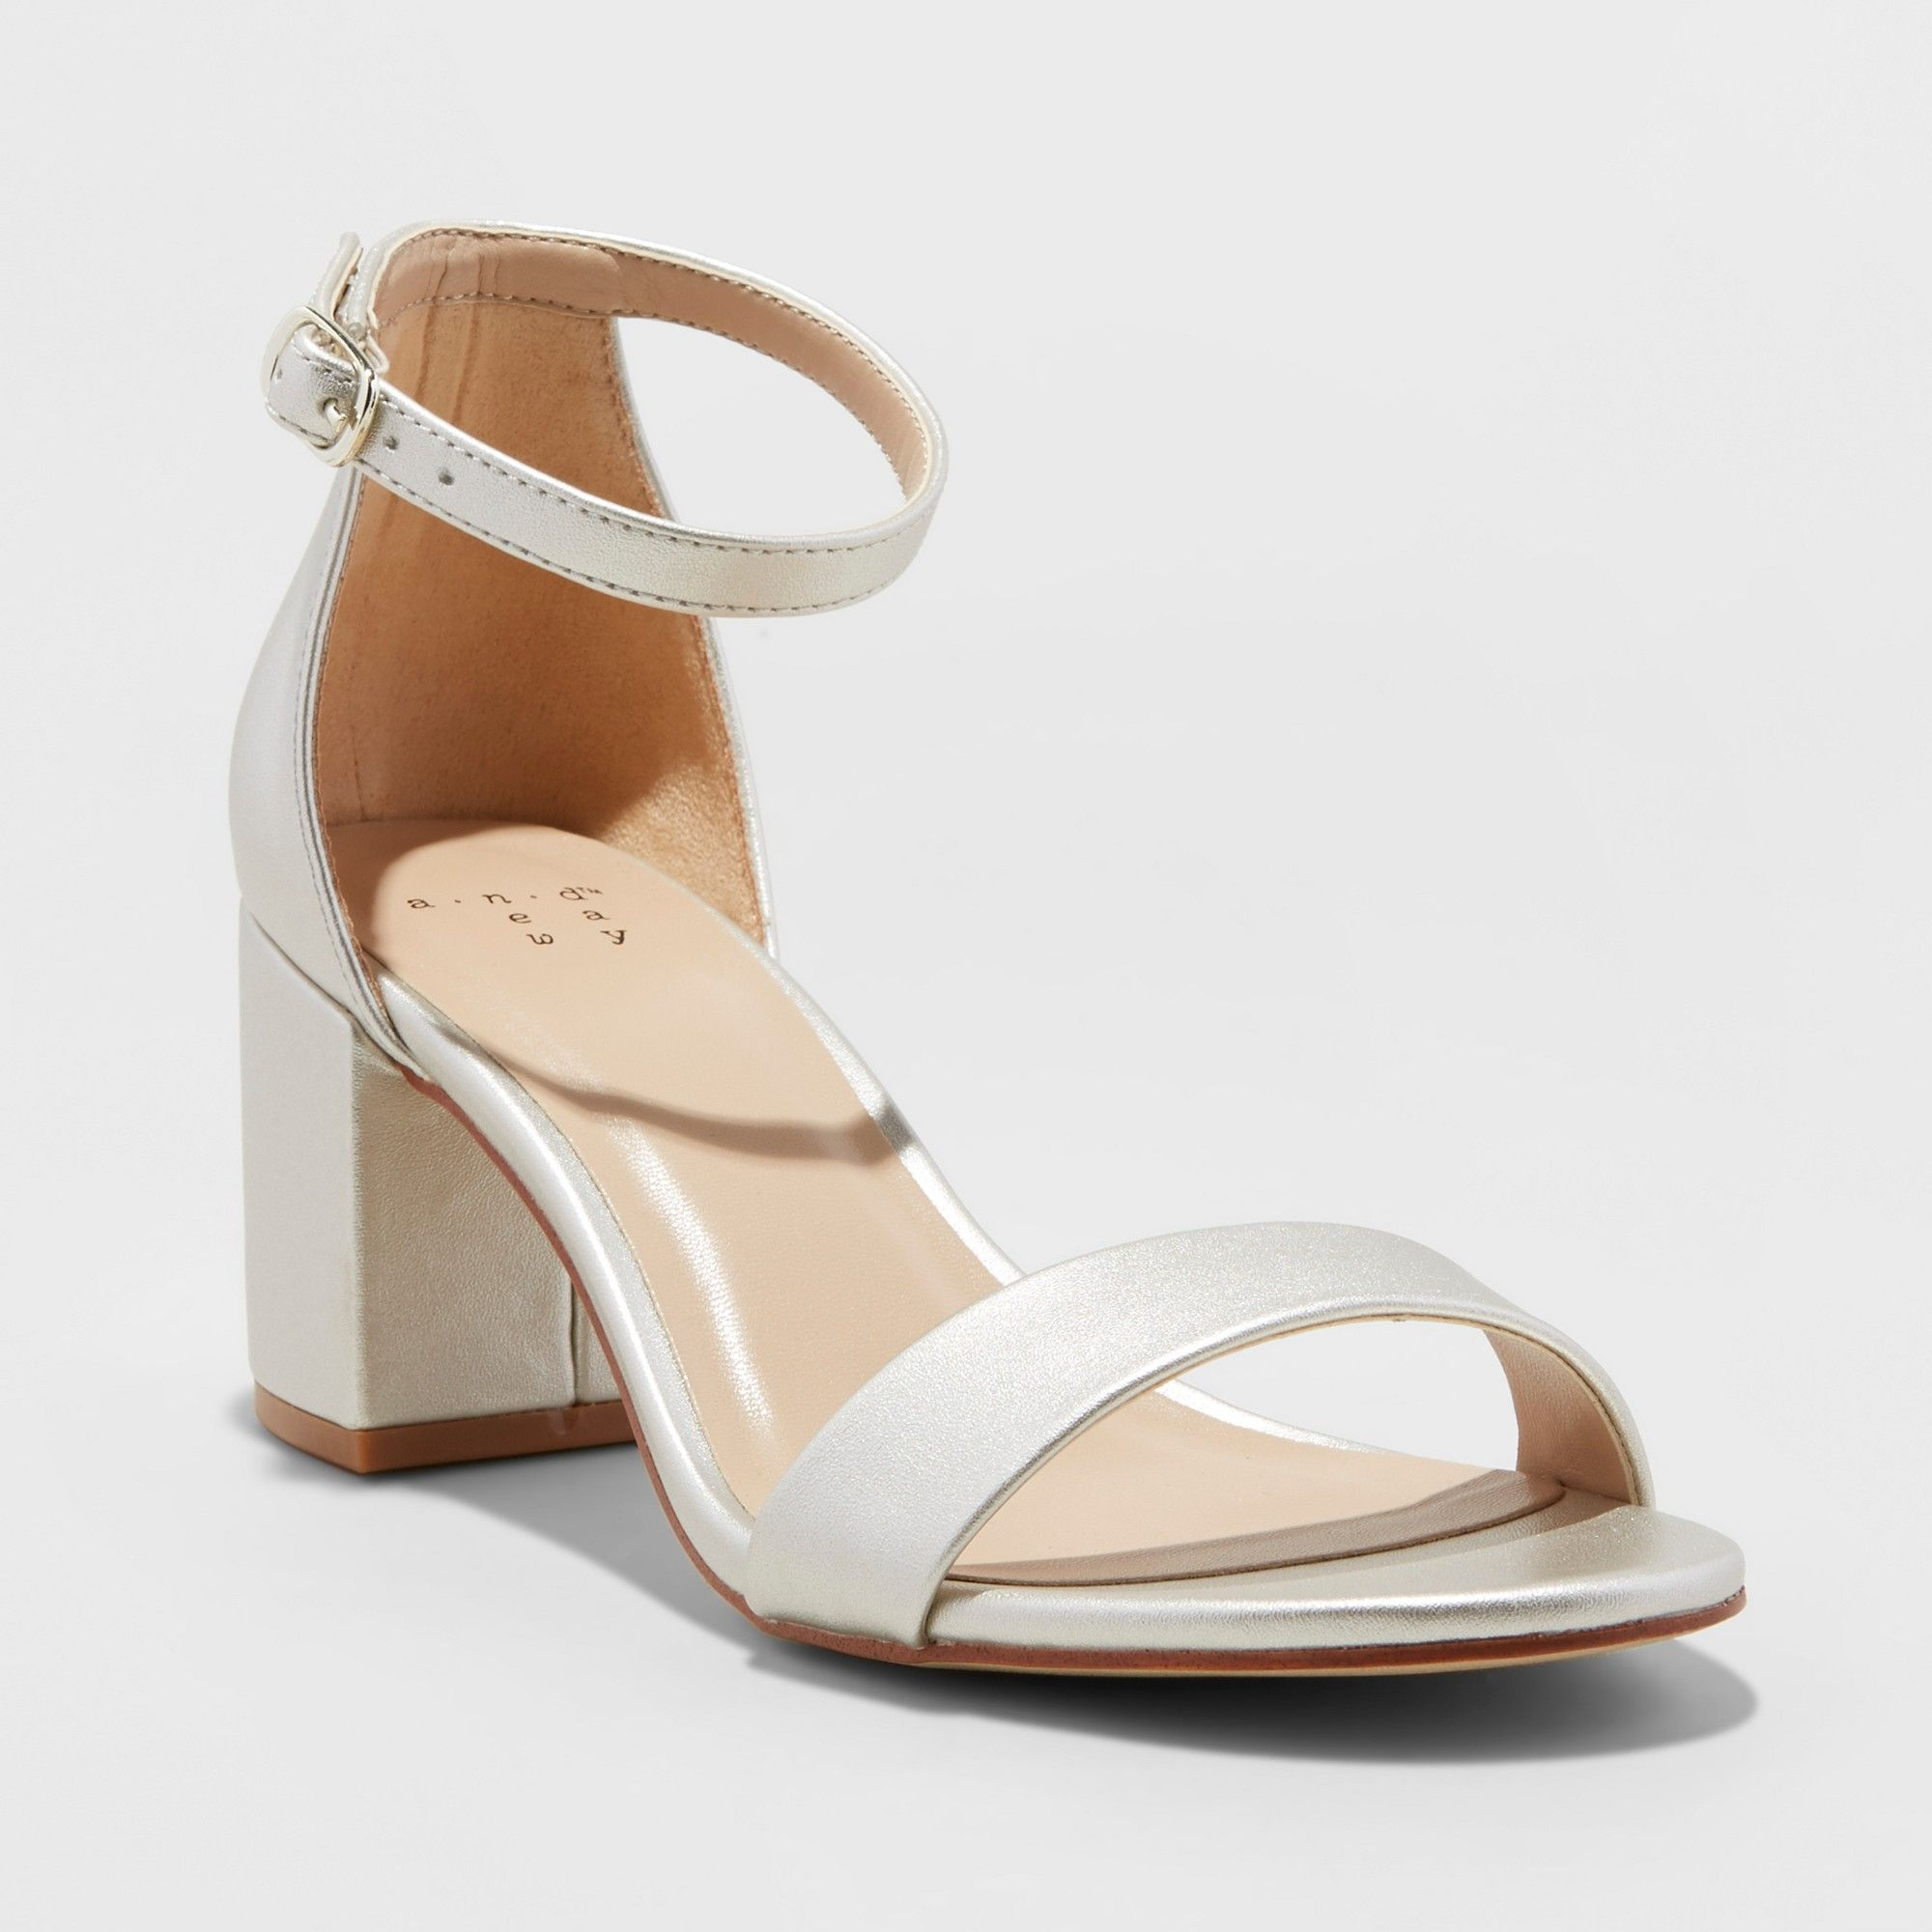 a7bab6cb657 Women s Micahela Satin Wide Width Mid Block Heel Pump Sandal - A New Day  Champagne (Beige) 10W